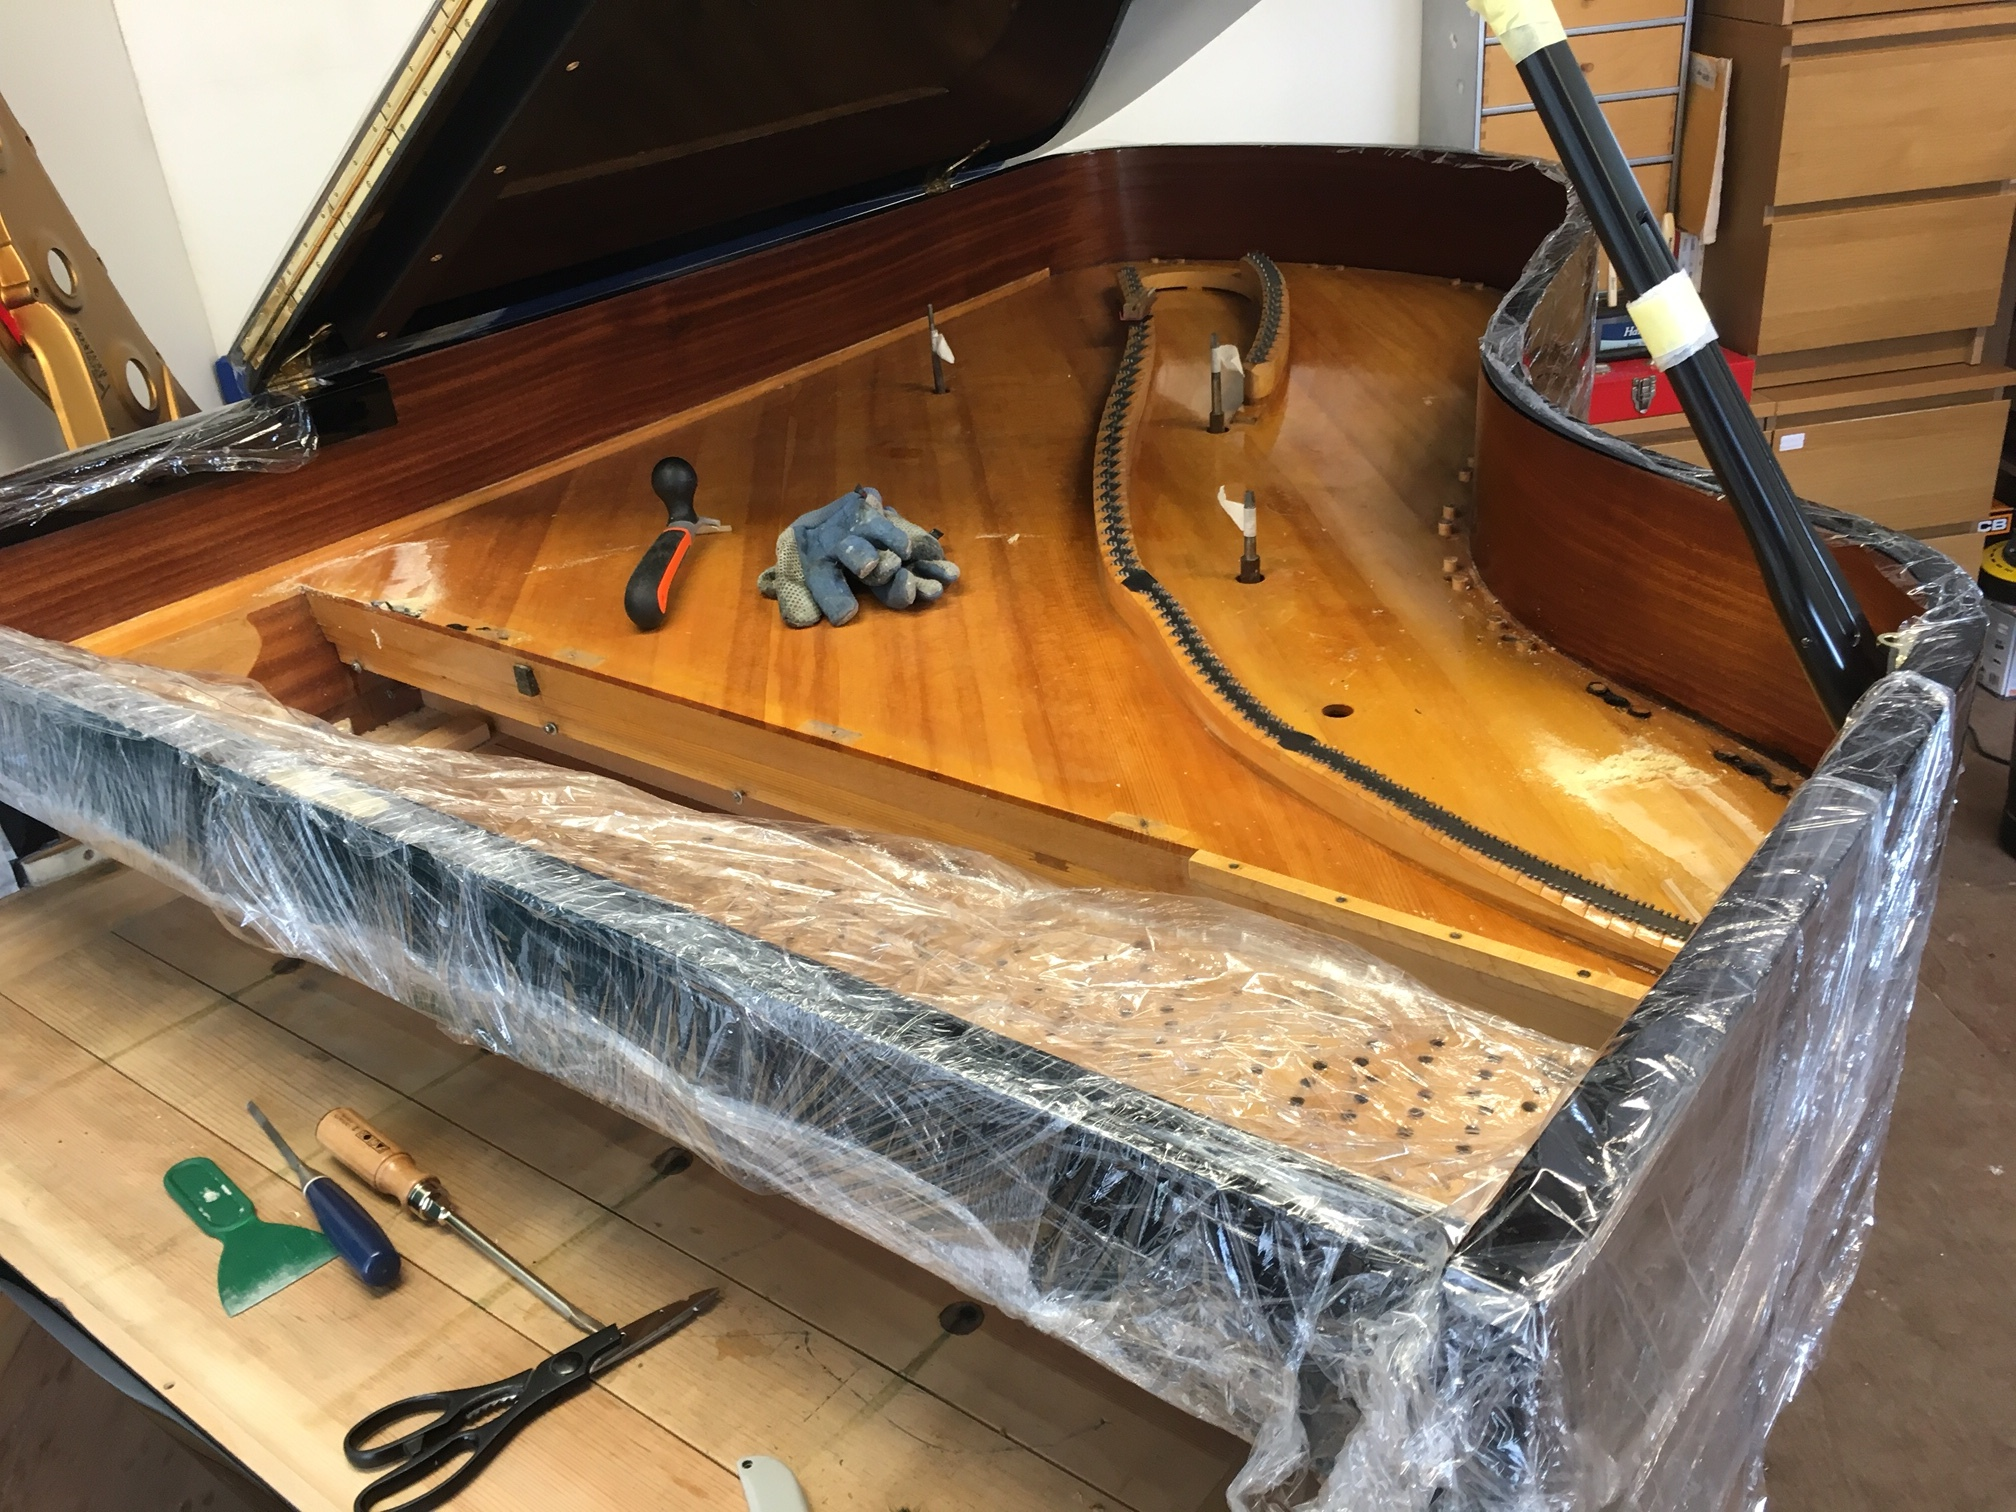 Preparing for the old soundboard varnish to be removed, prior to main lid being removed